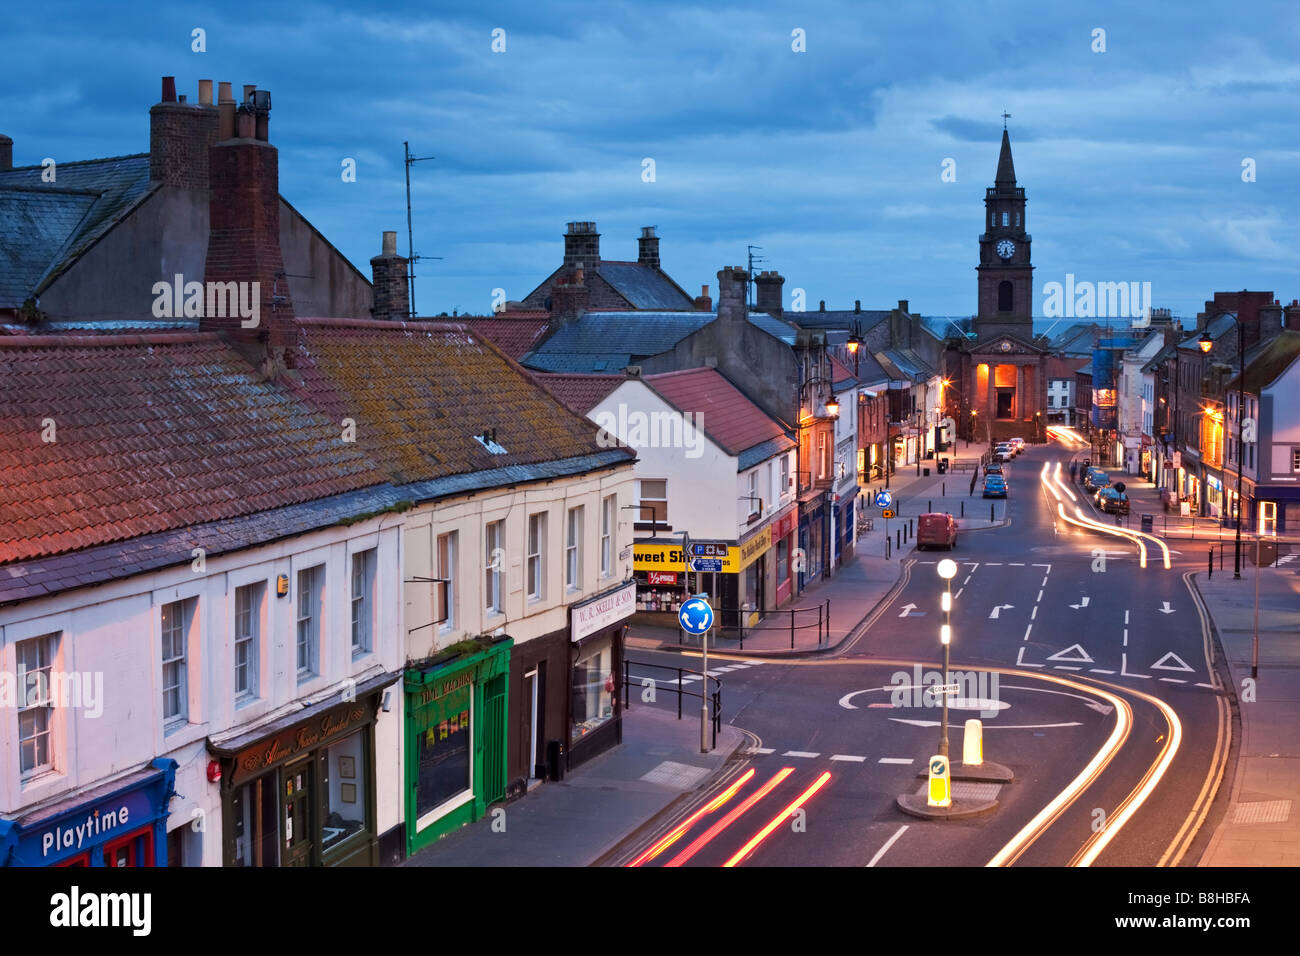 Berwick-upon-Tweed looking down Marygate from the Elizabethan city walls that still encircle the town, Northumberland, - Stock Image